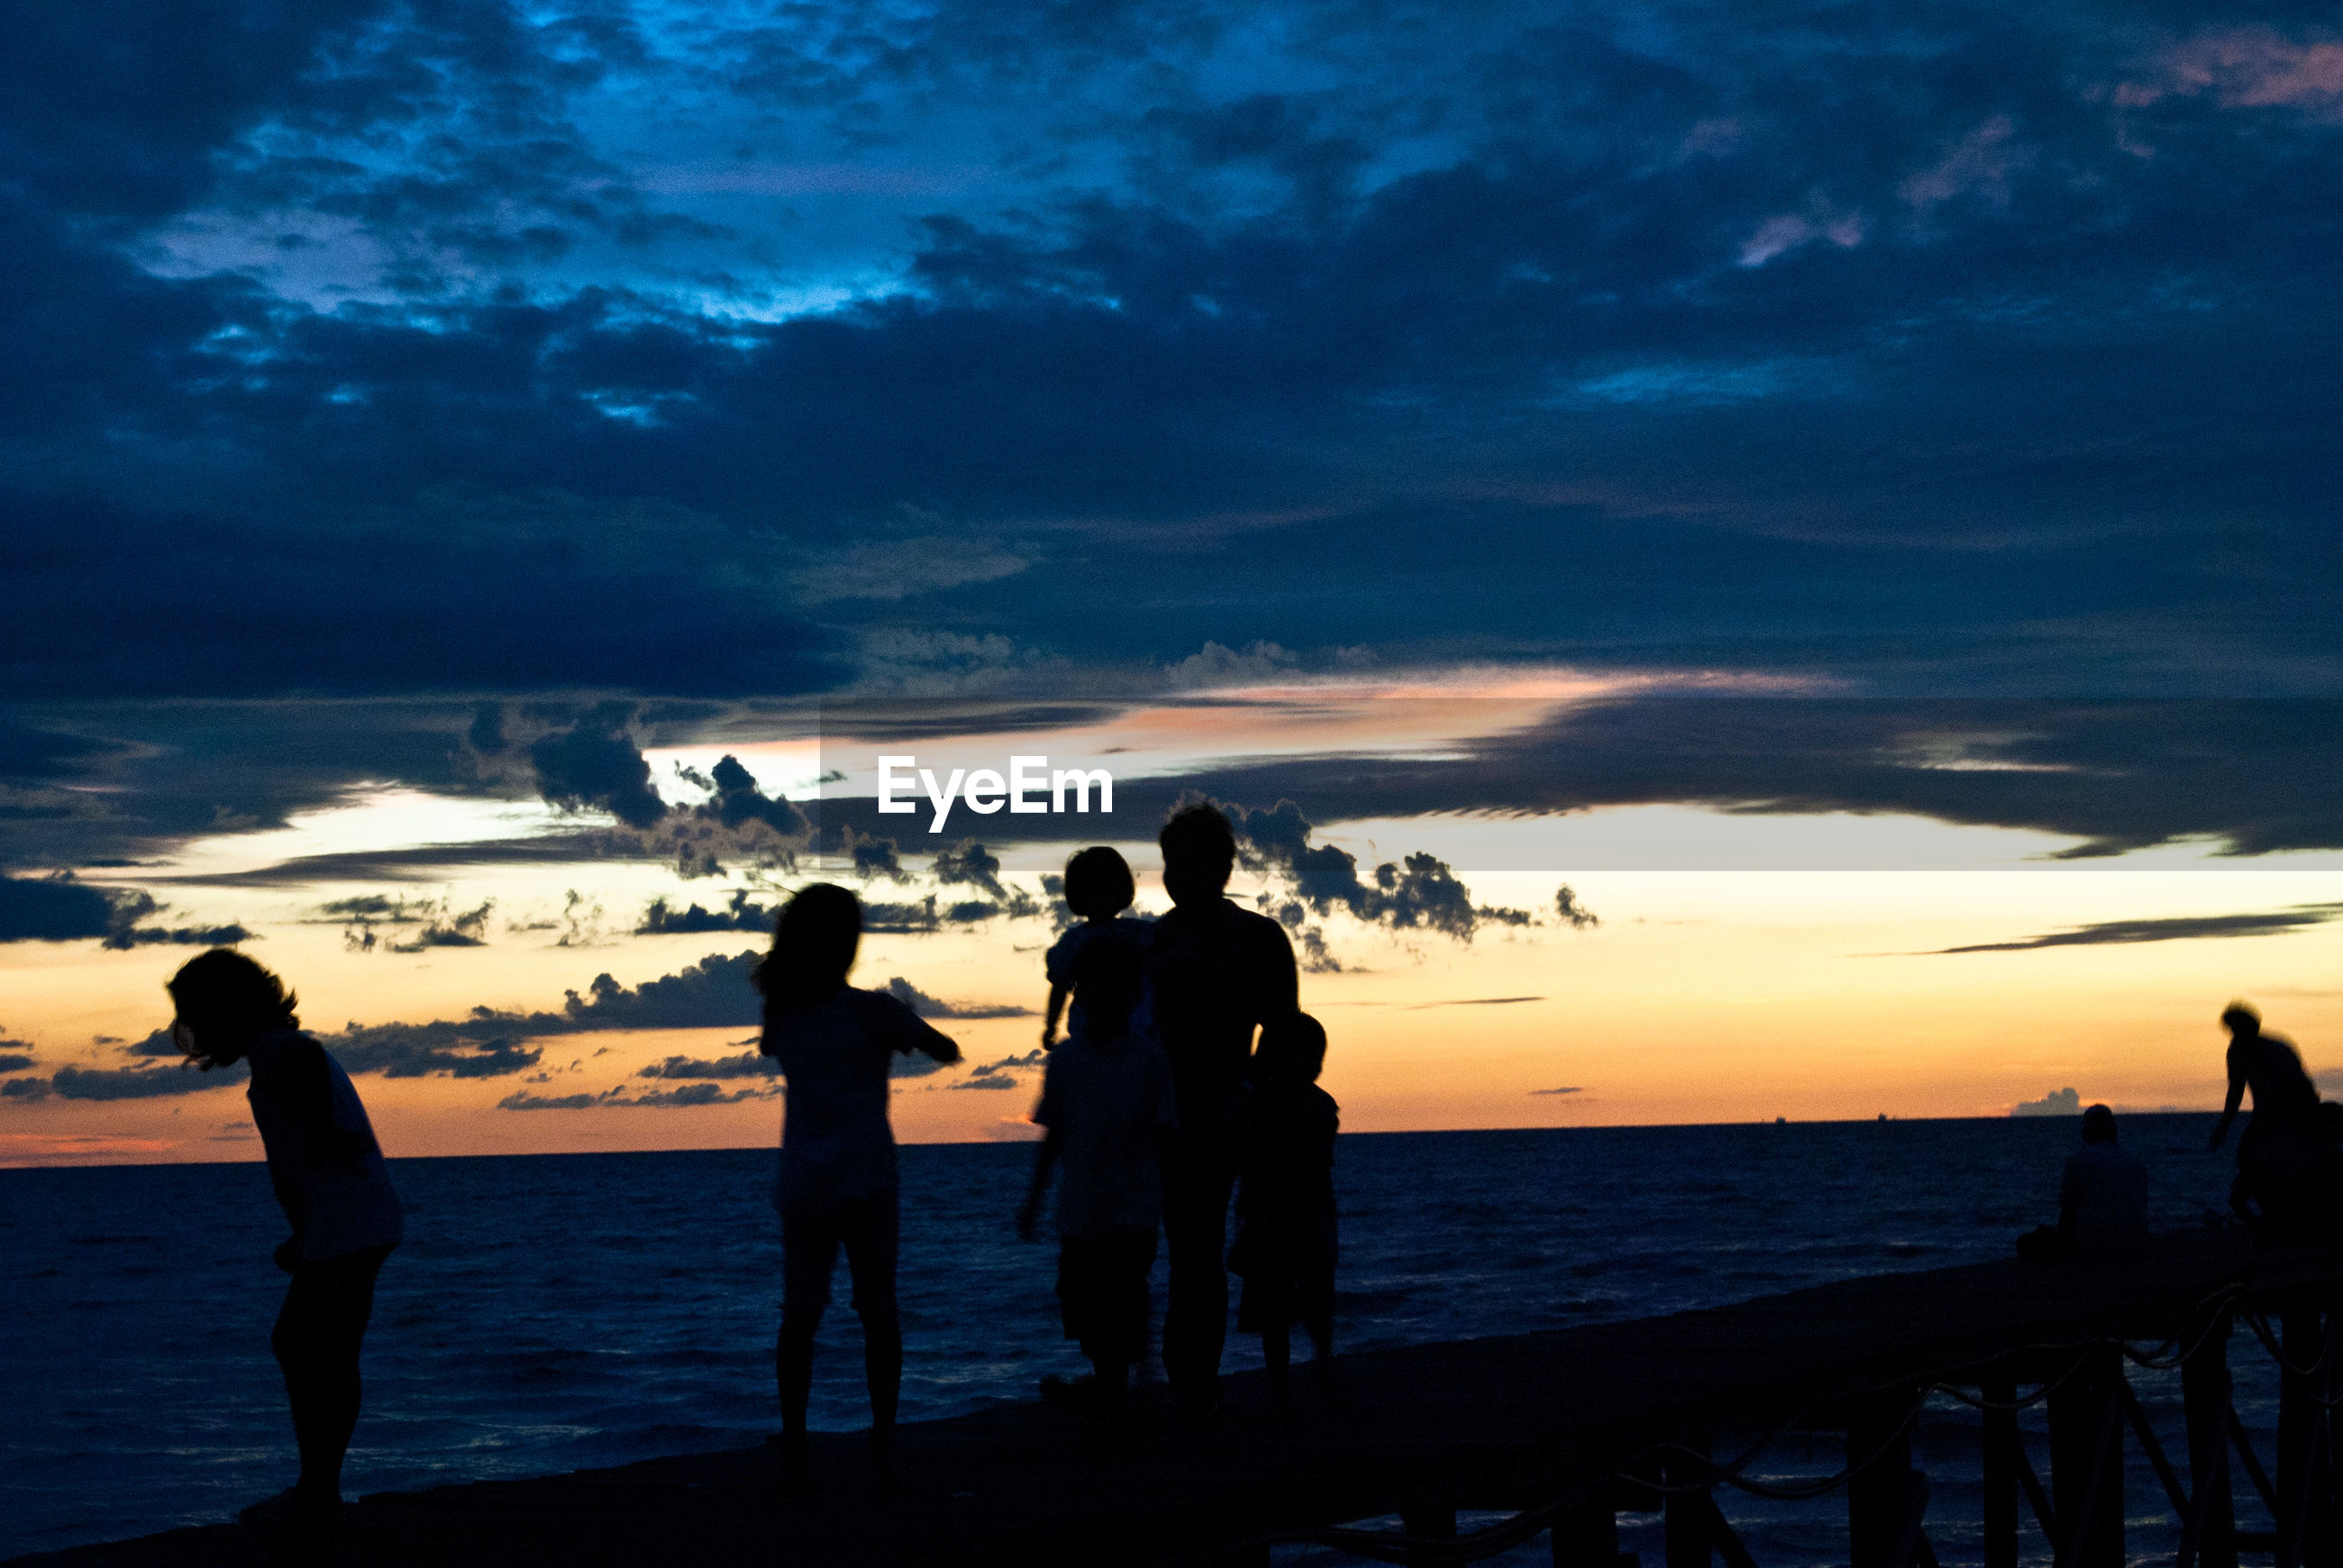 Silhouette people standing on pier over sea against cloudy sky during sunset